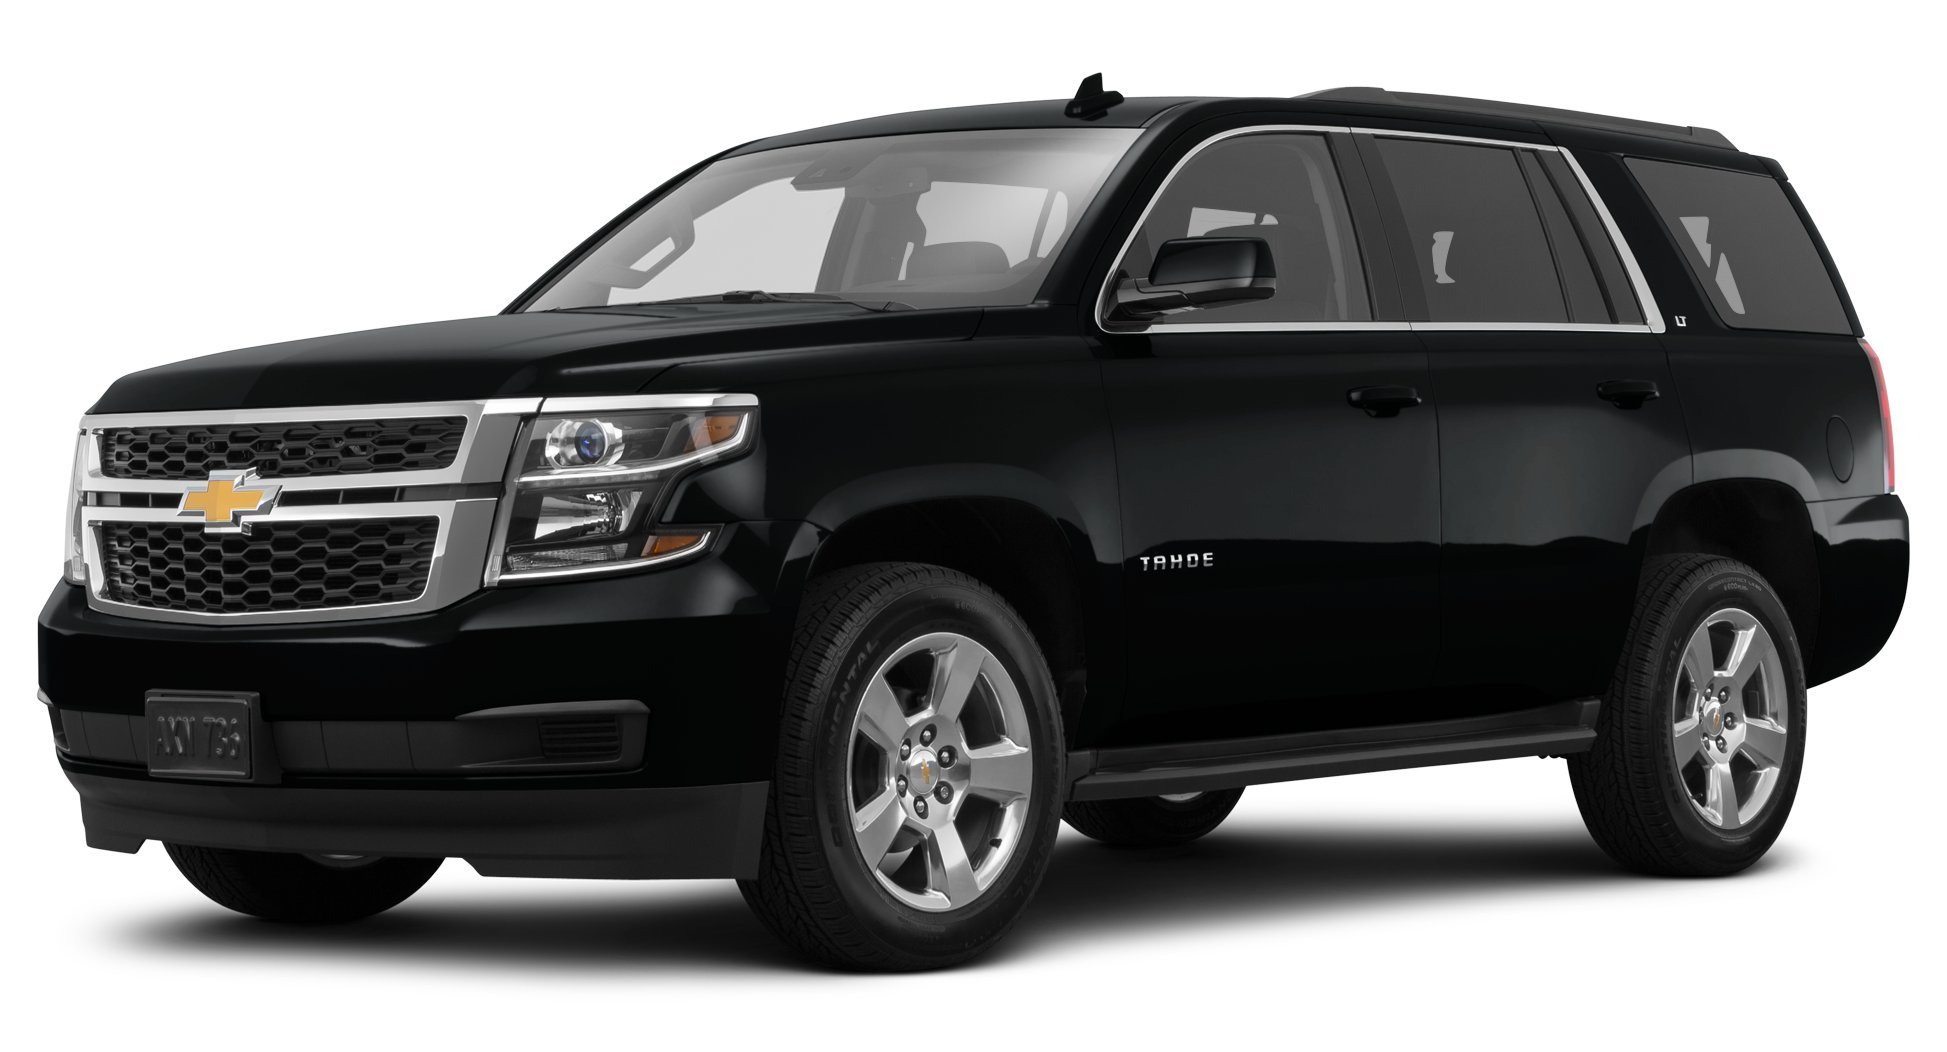 8 Passenger Suv >> Amazon.com: 2016 Chevrolet Tahoe Reviews, Images, and Specs: Vehicles